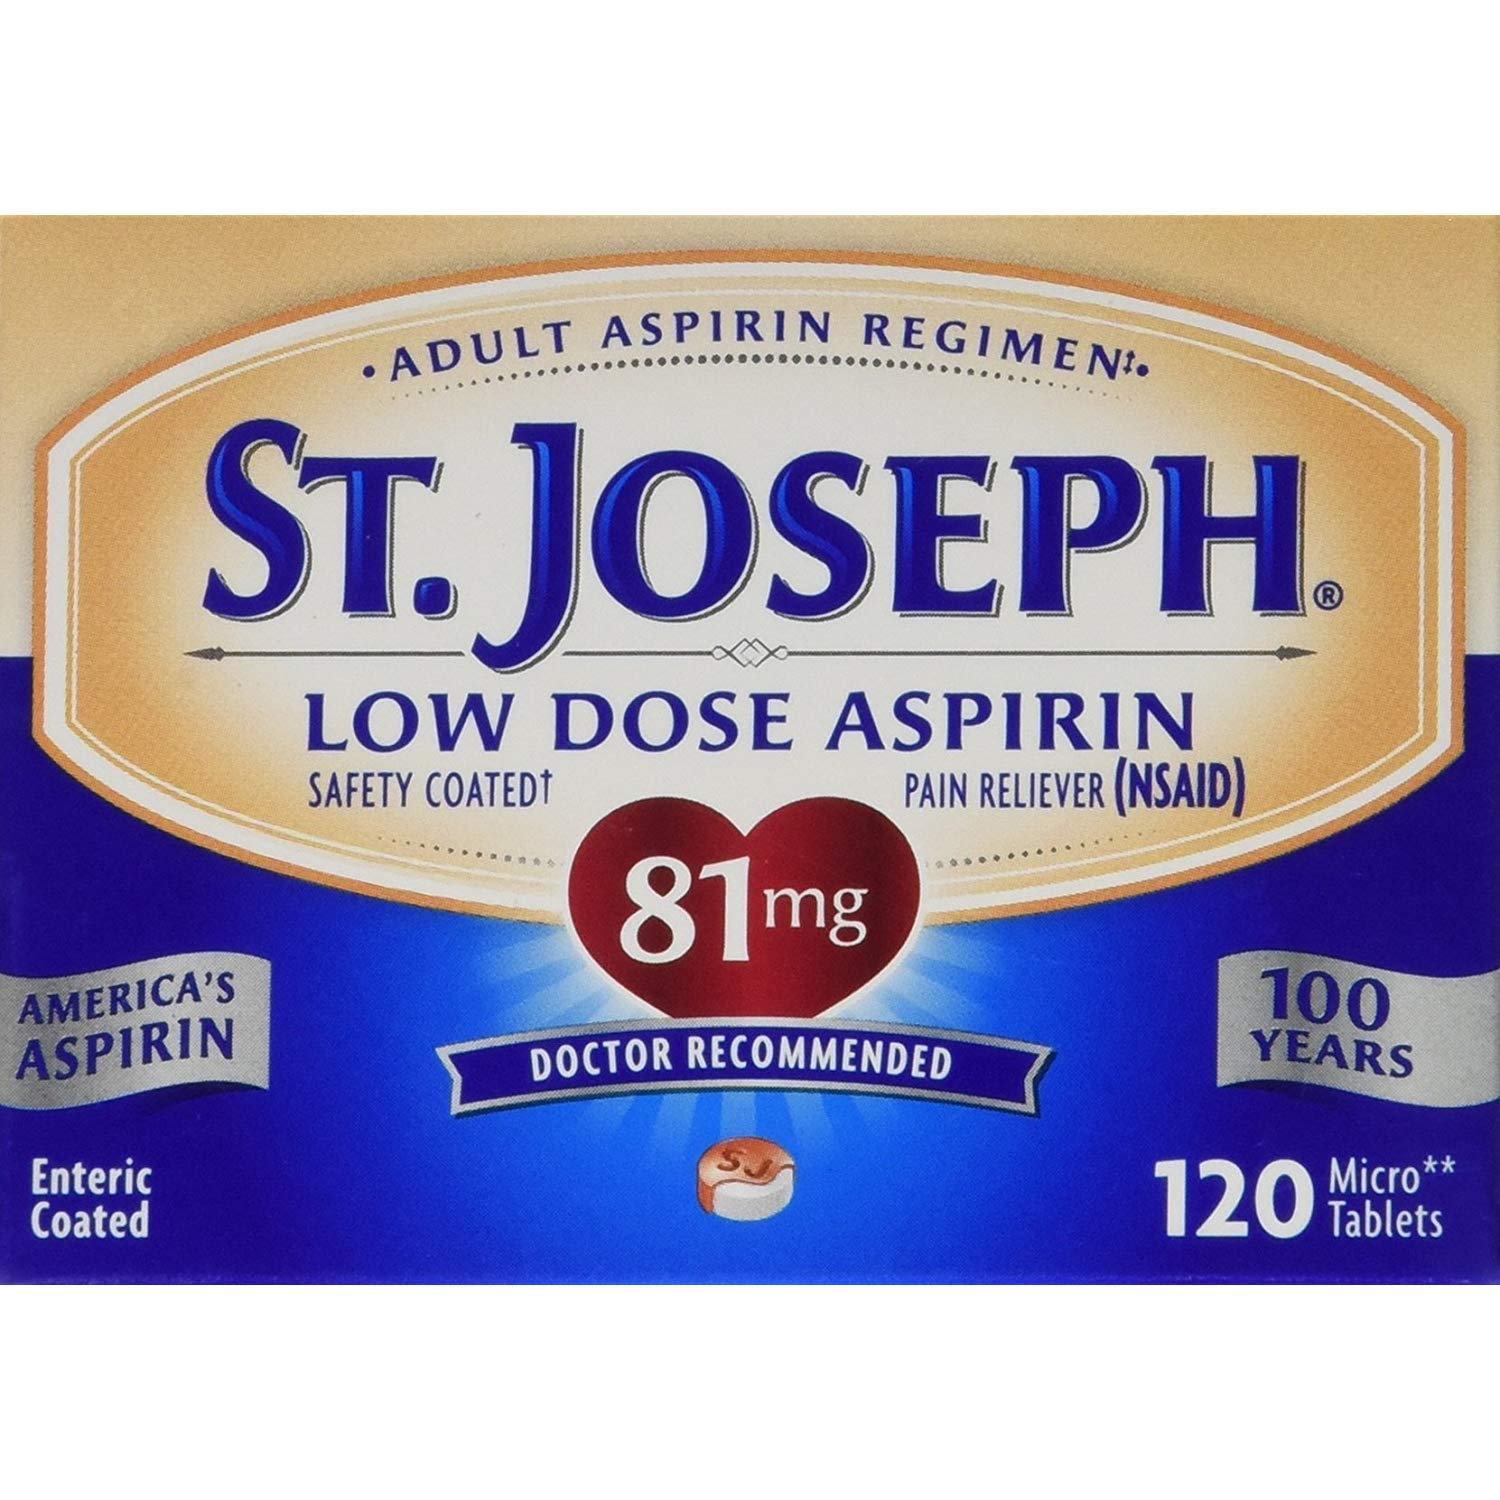 St. Joseph Low Dose Aspirin 81 mg Micro Tablets - 120 ct, Pack of 6 by St. Joseph